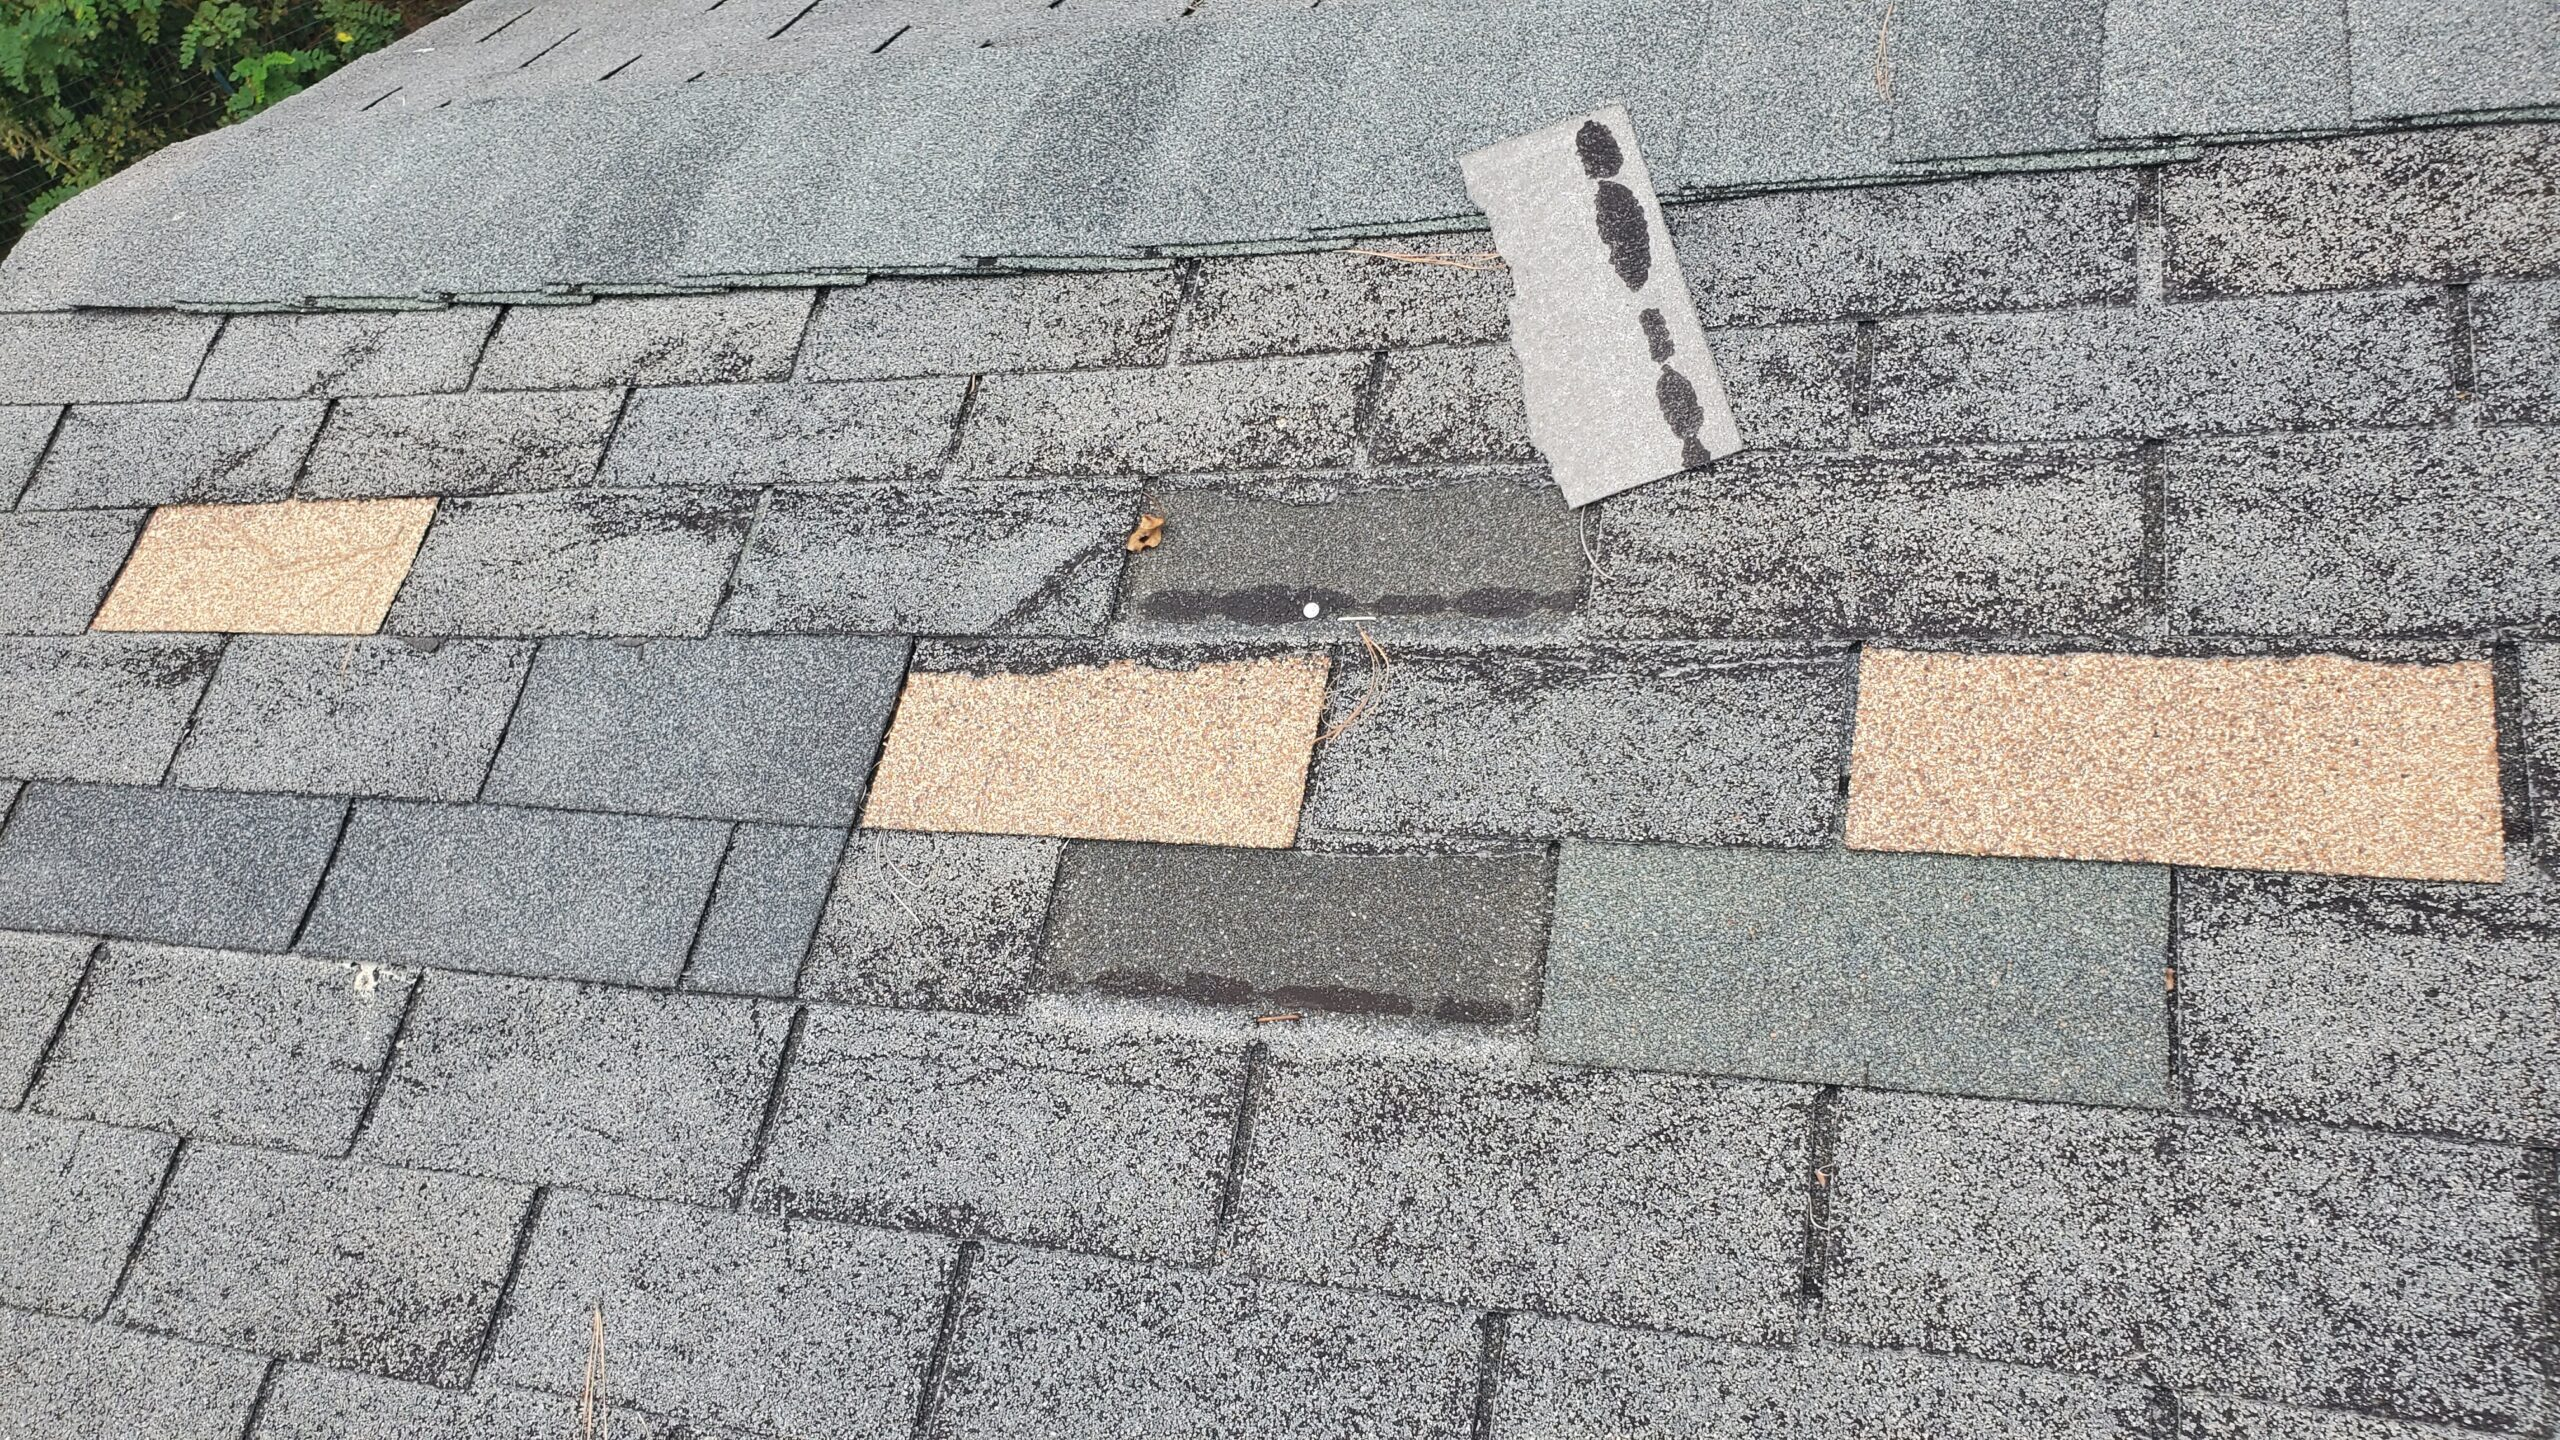 This is a close up picture of a shingle roof that ha